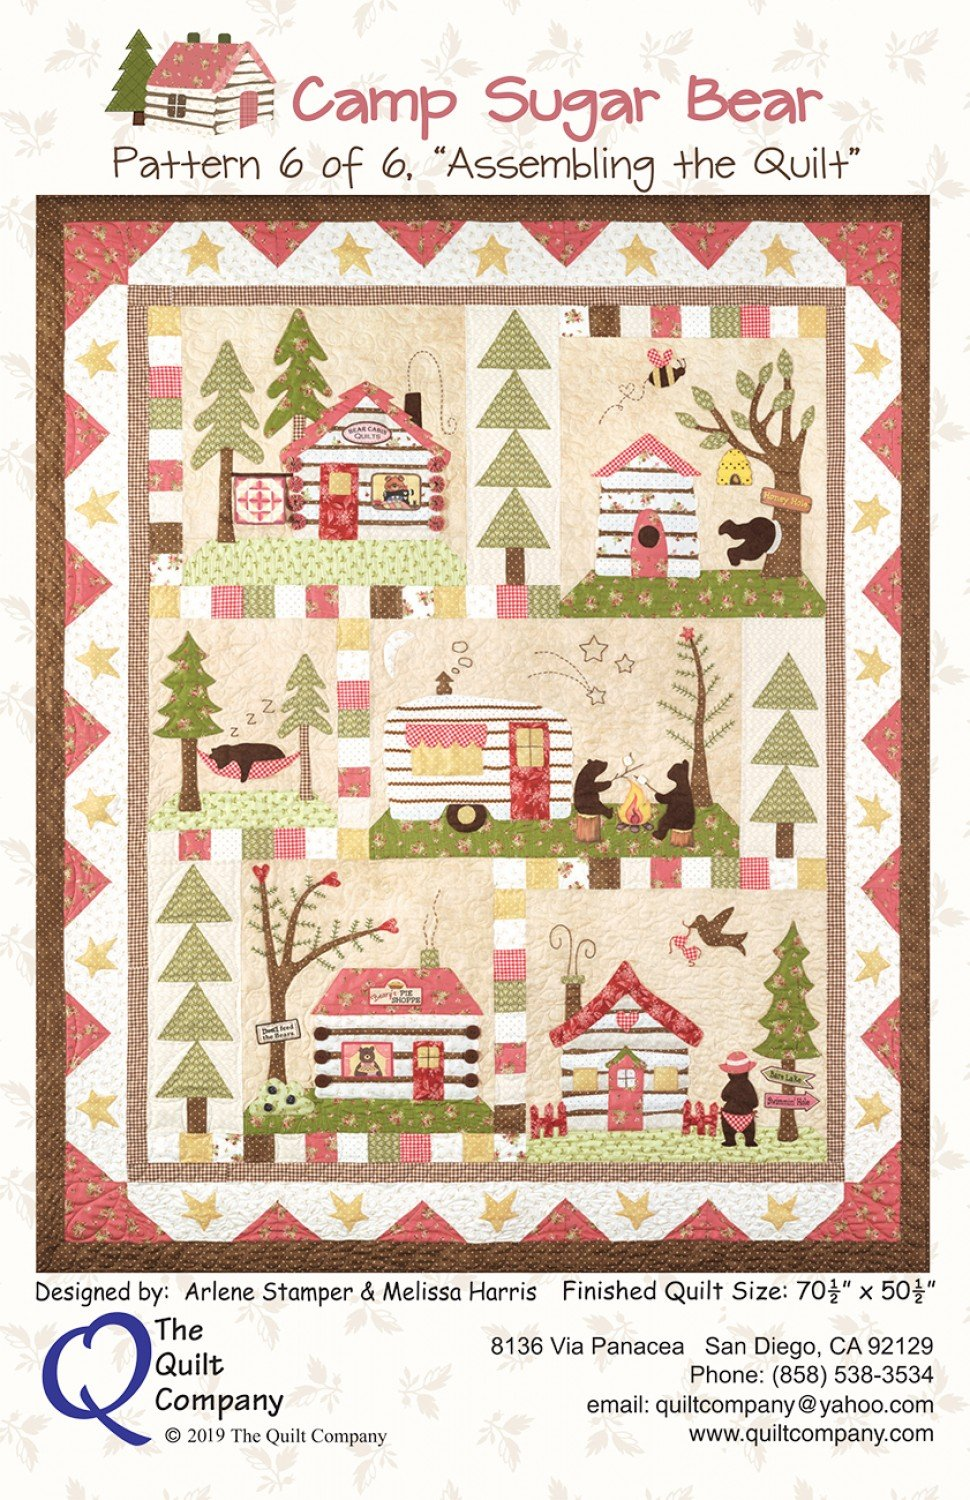 Camp Sugar Bear Quilt Pattern Set with Accessory Fabric Packet